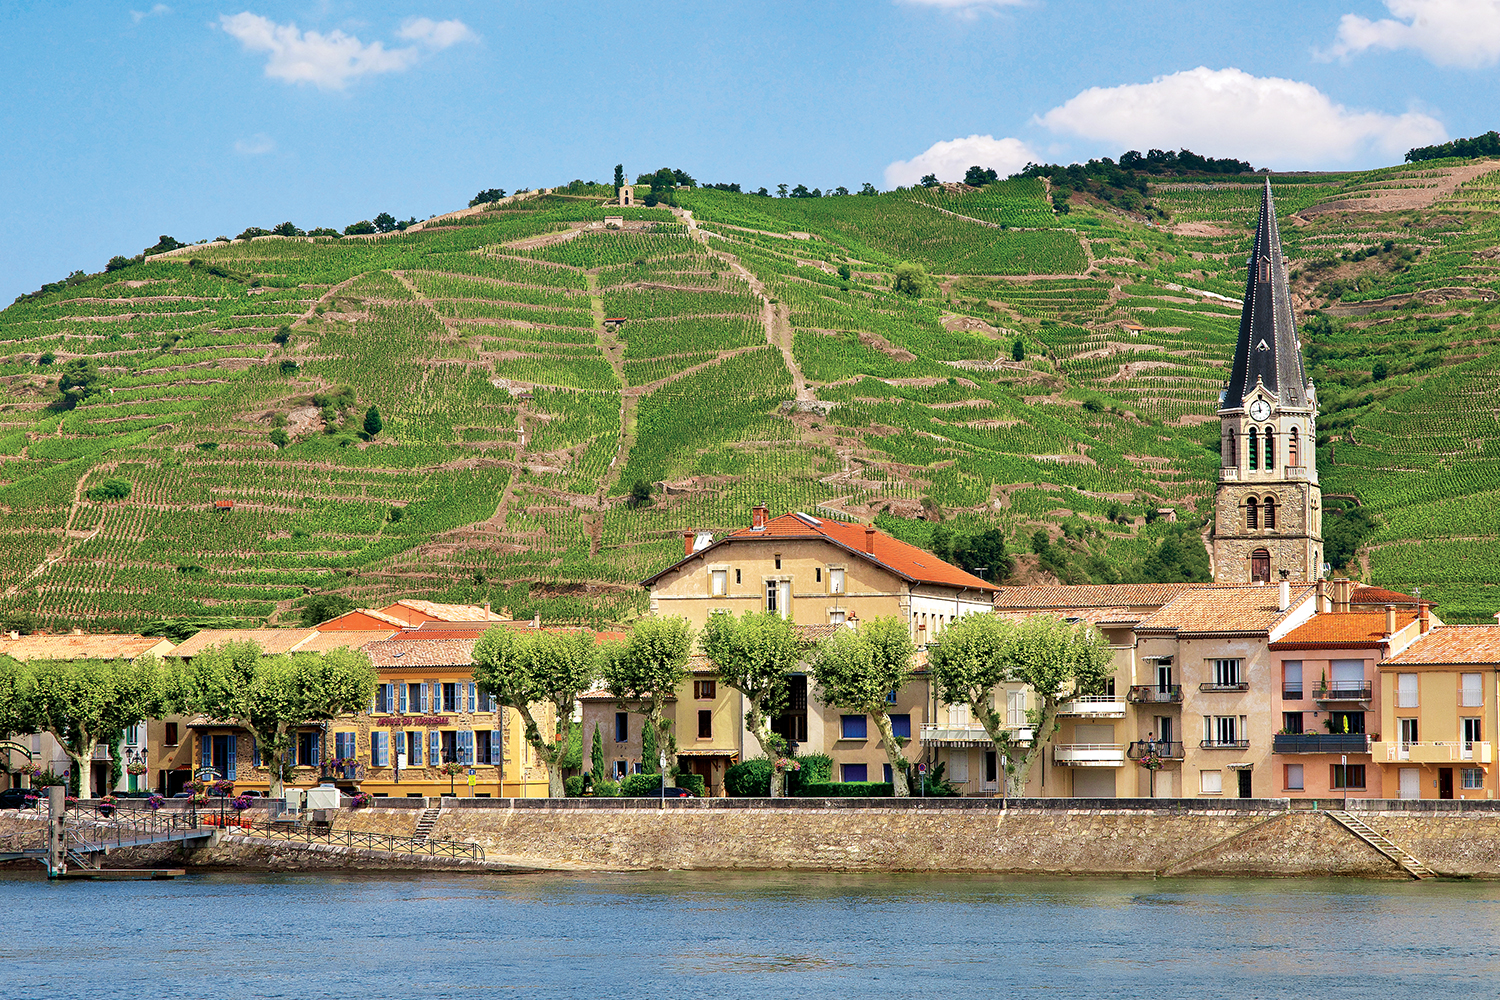 WineRegions_TheRhone_FRANCE_Cote-du-Rhone_ss_118904242.jpg